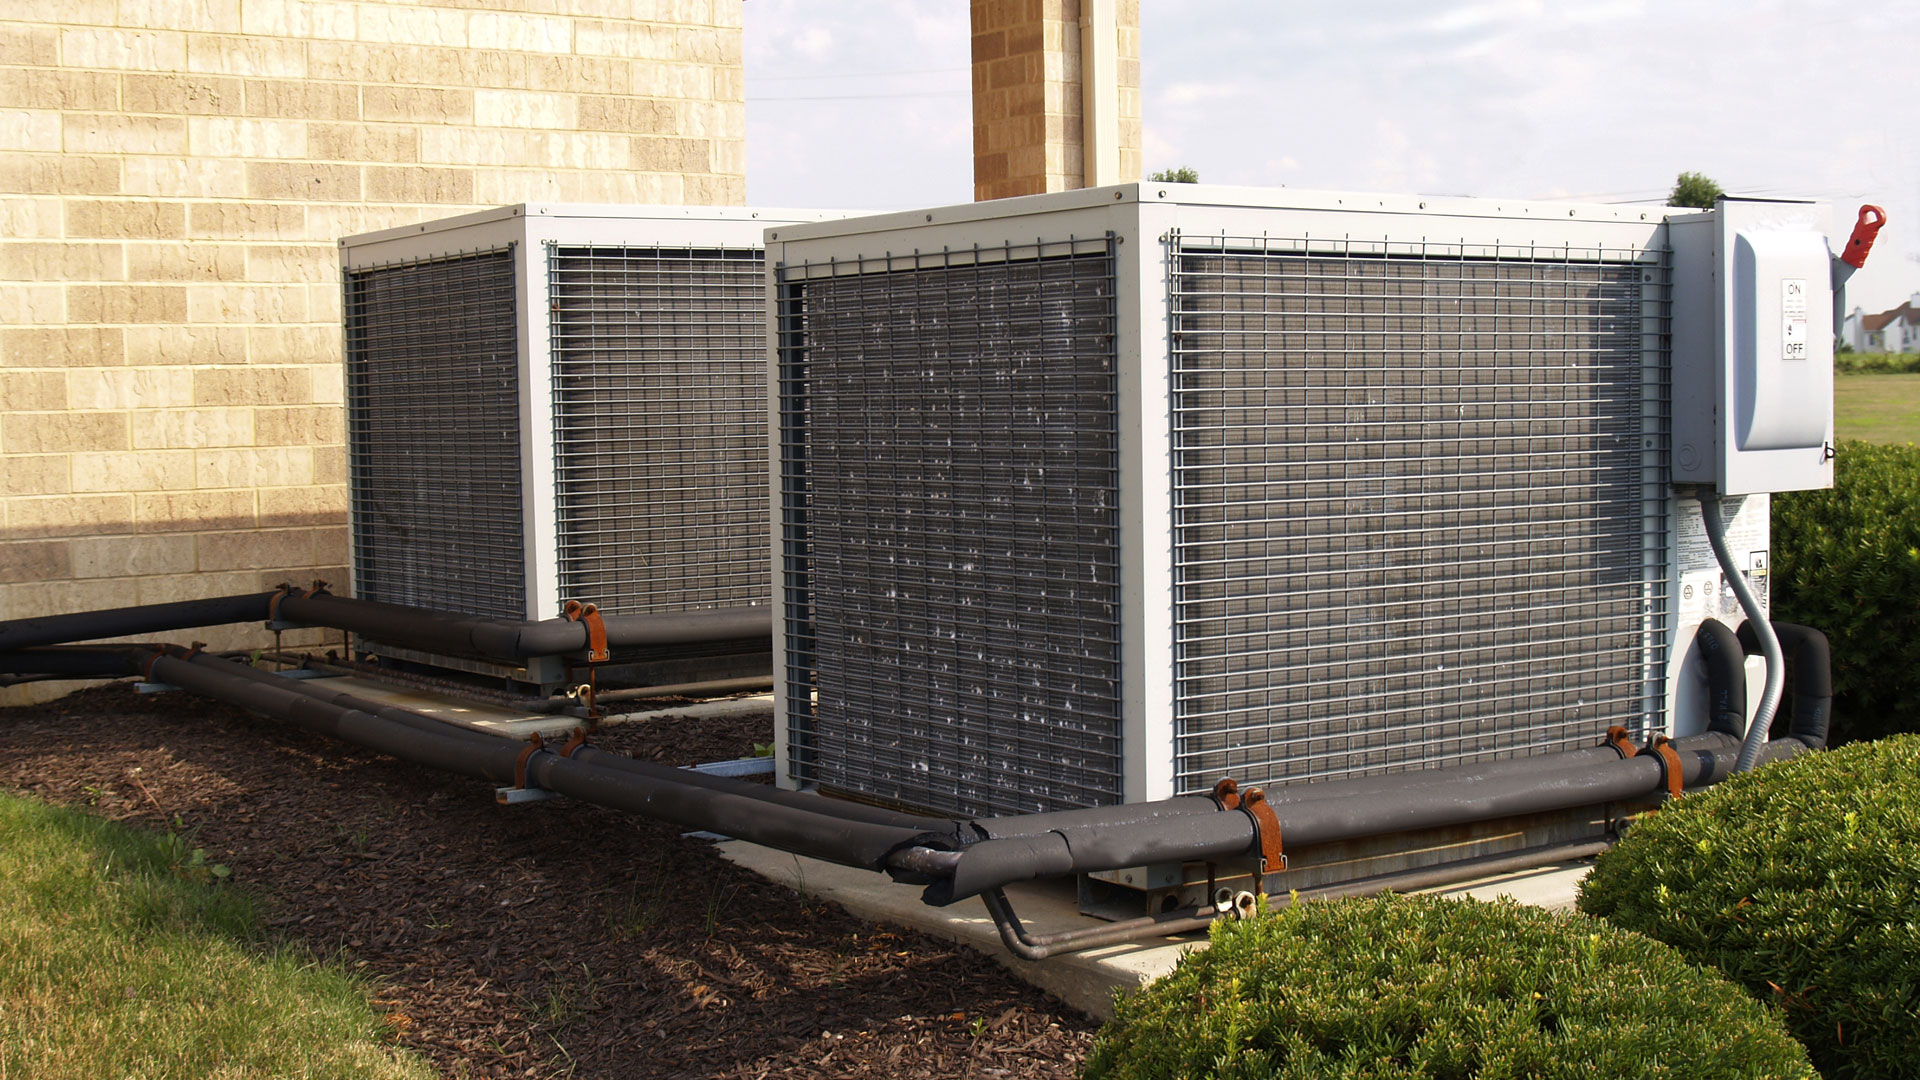 St. Louis Residential HVAC